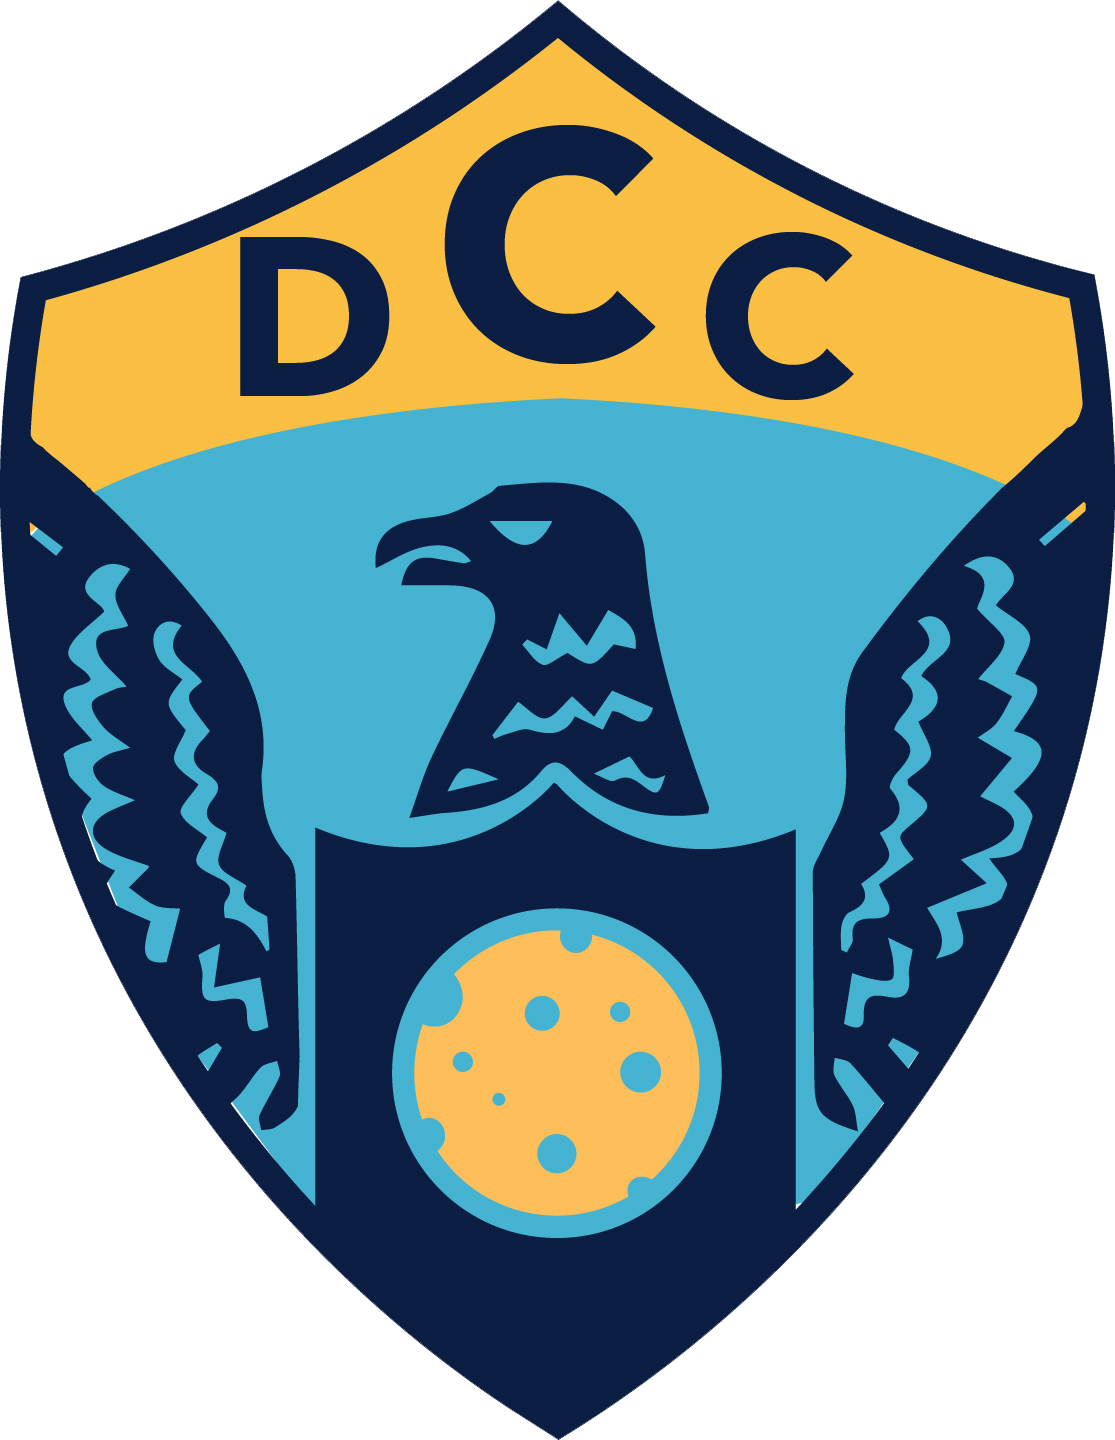 DC Cheddar Badge